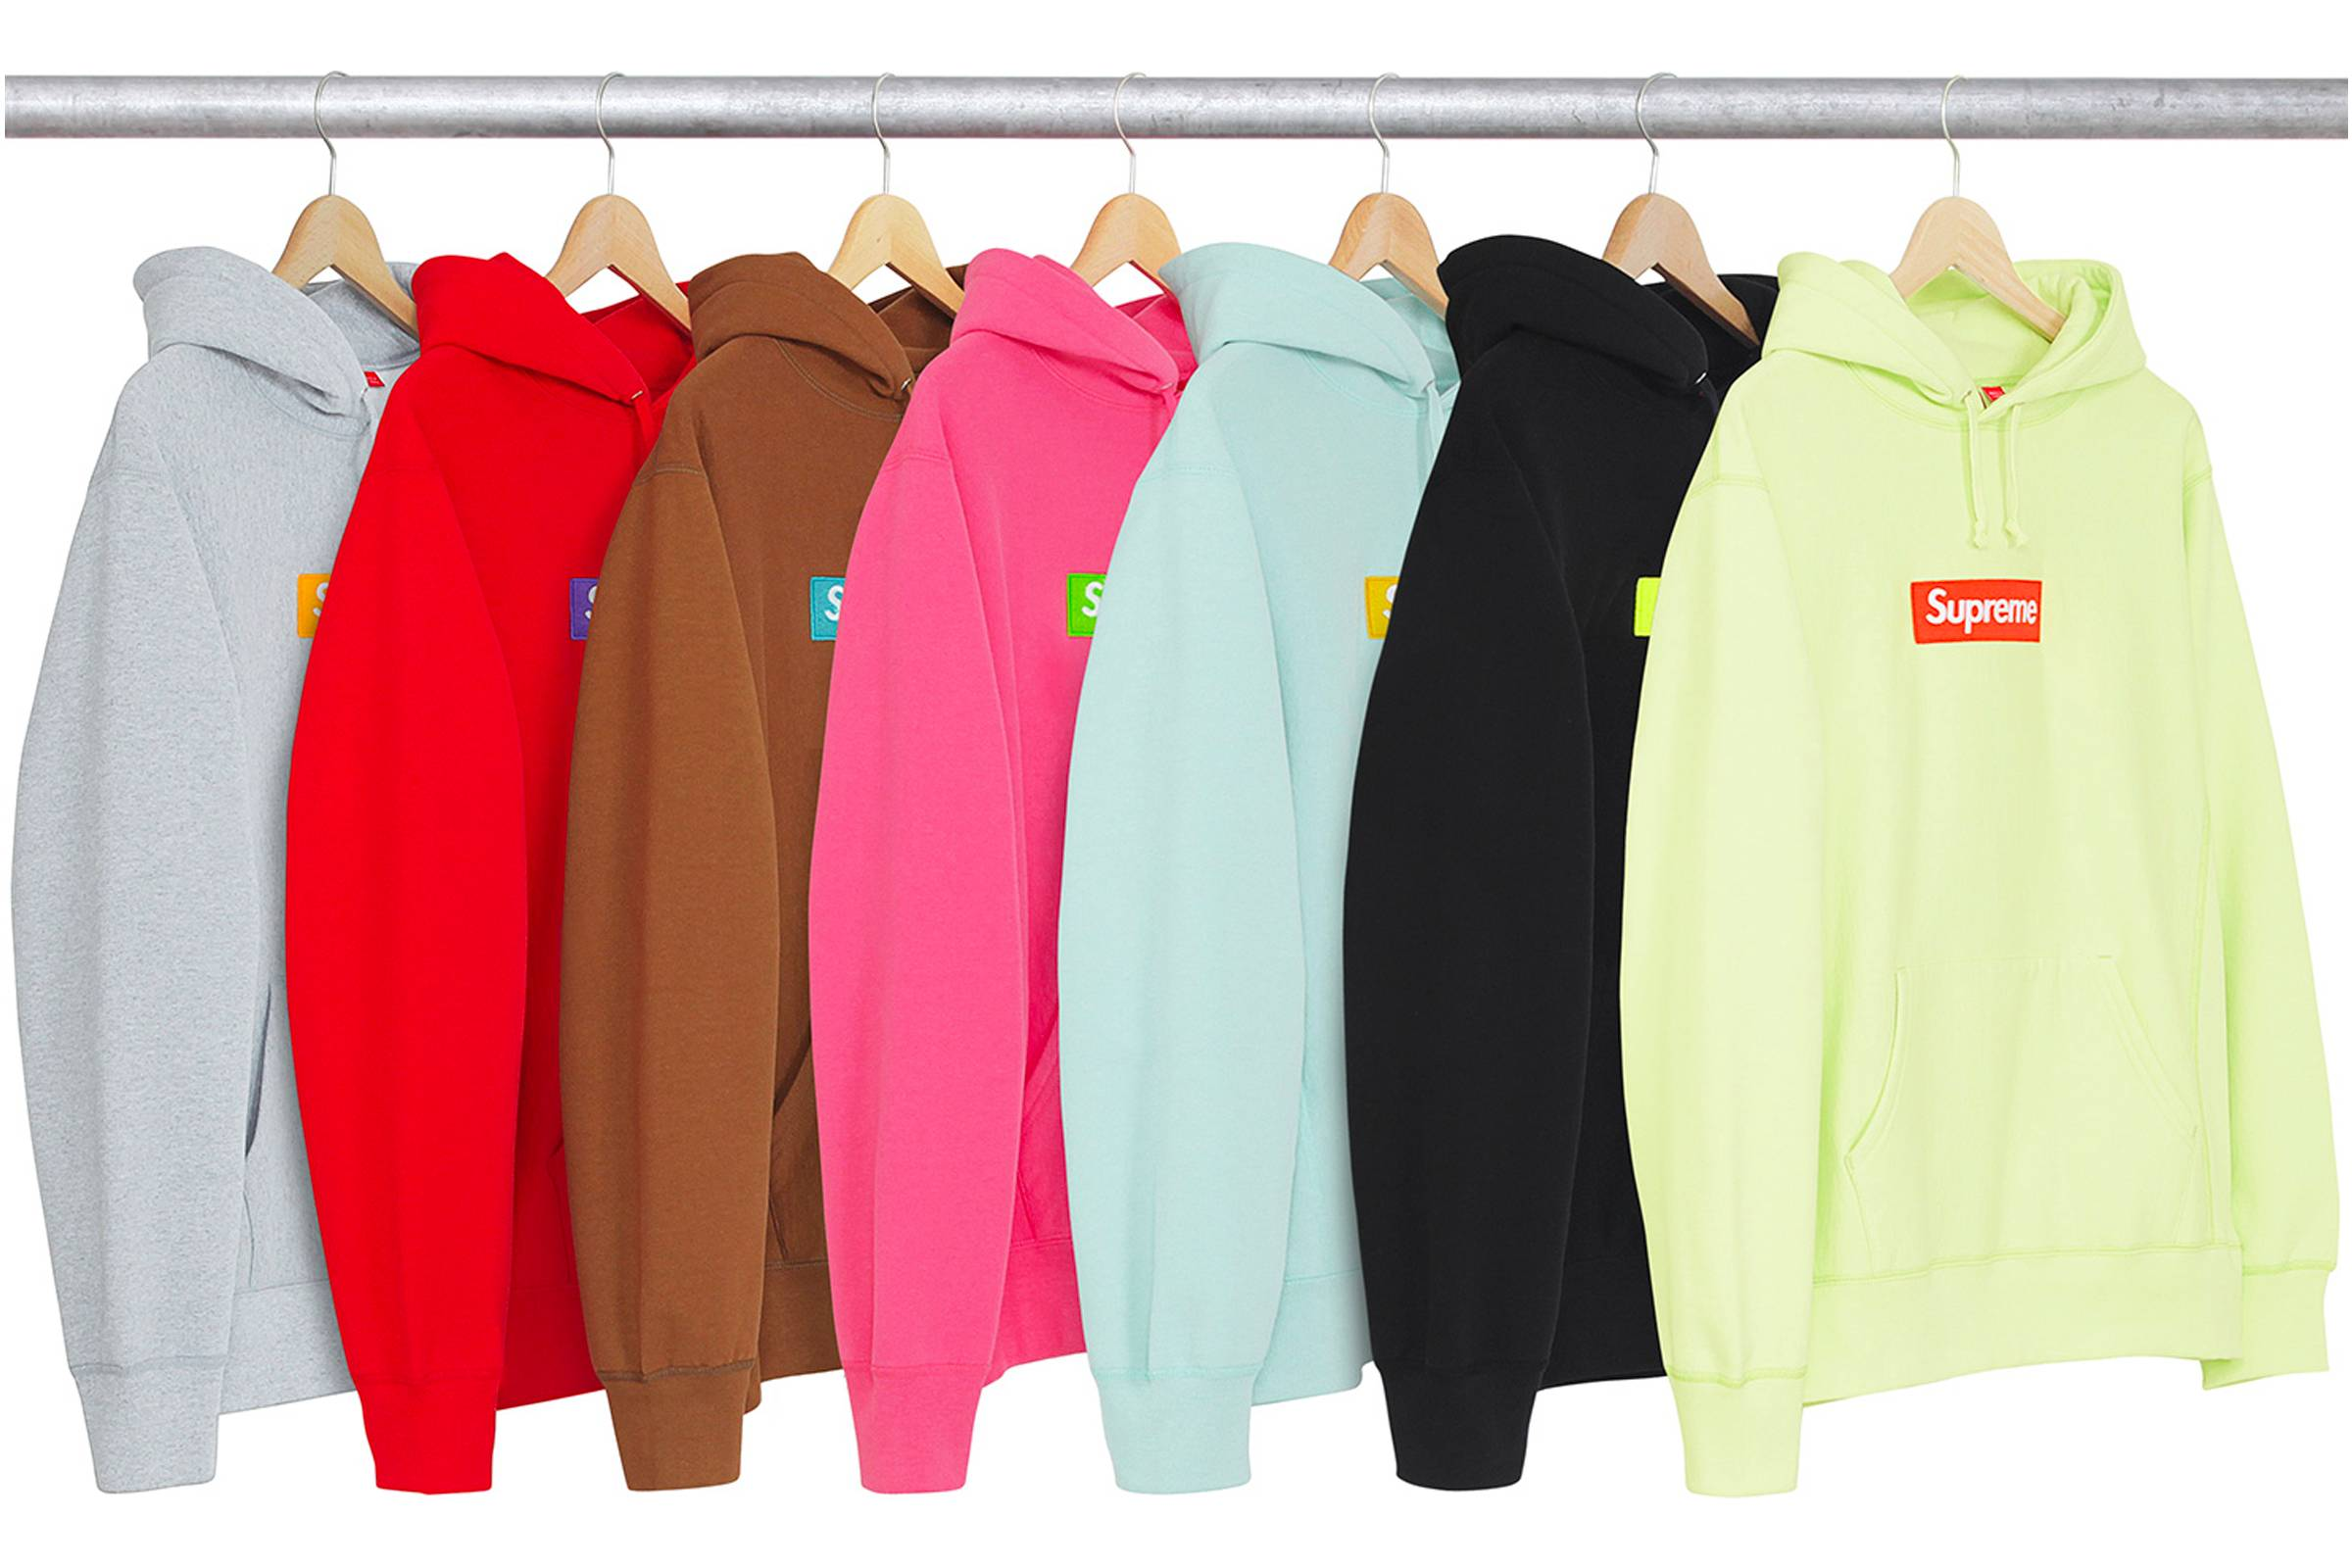 Fall/Winter 2017's Box Logo